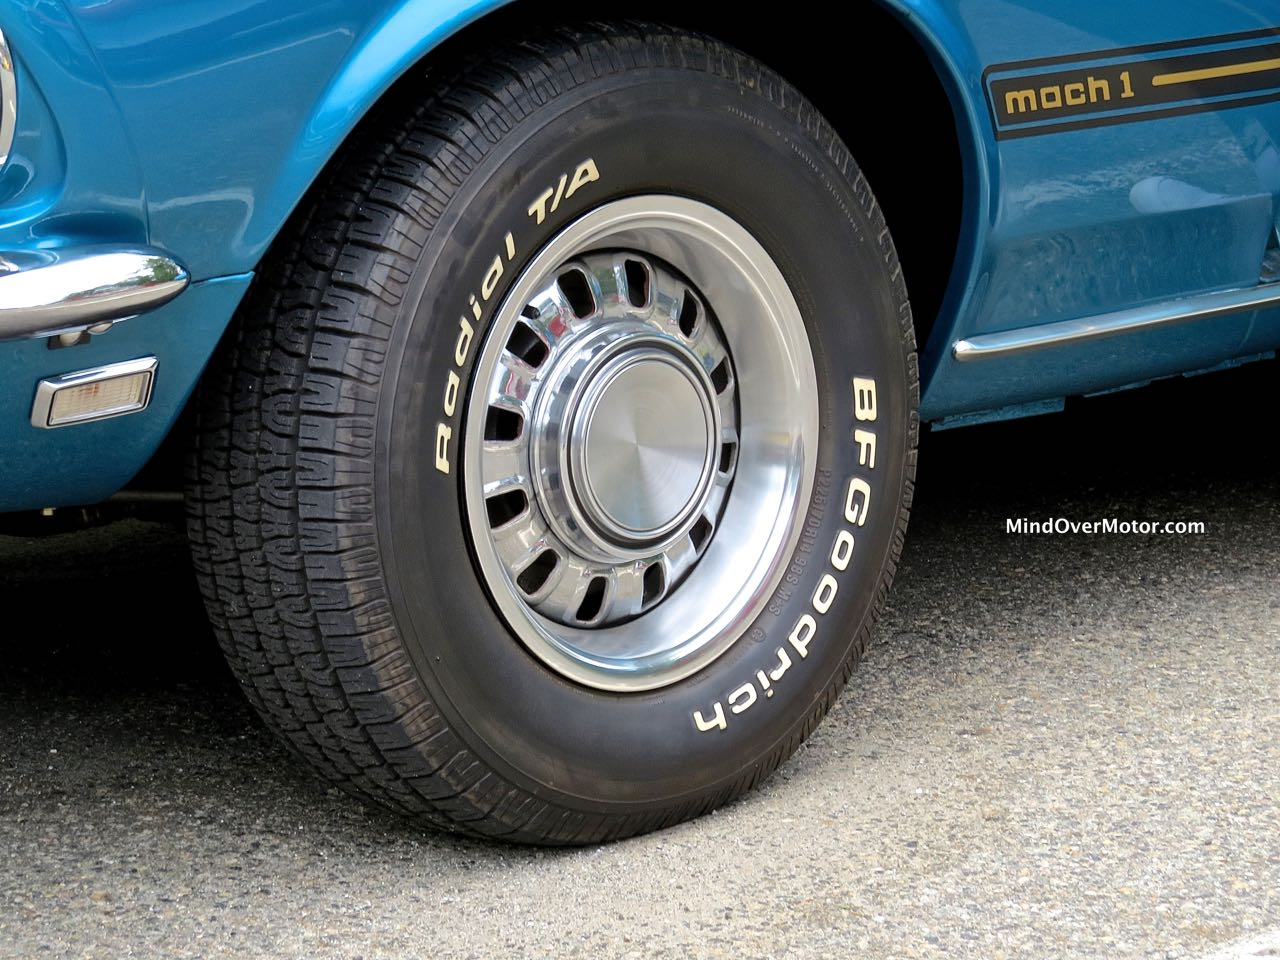 1969 Mustang Mach 1 Rim and Badge